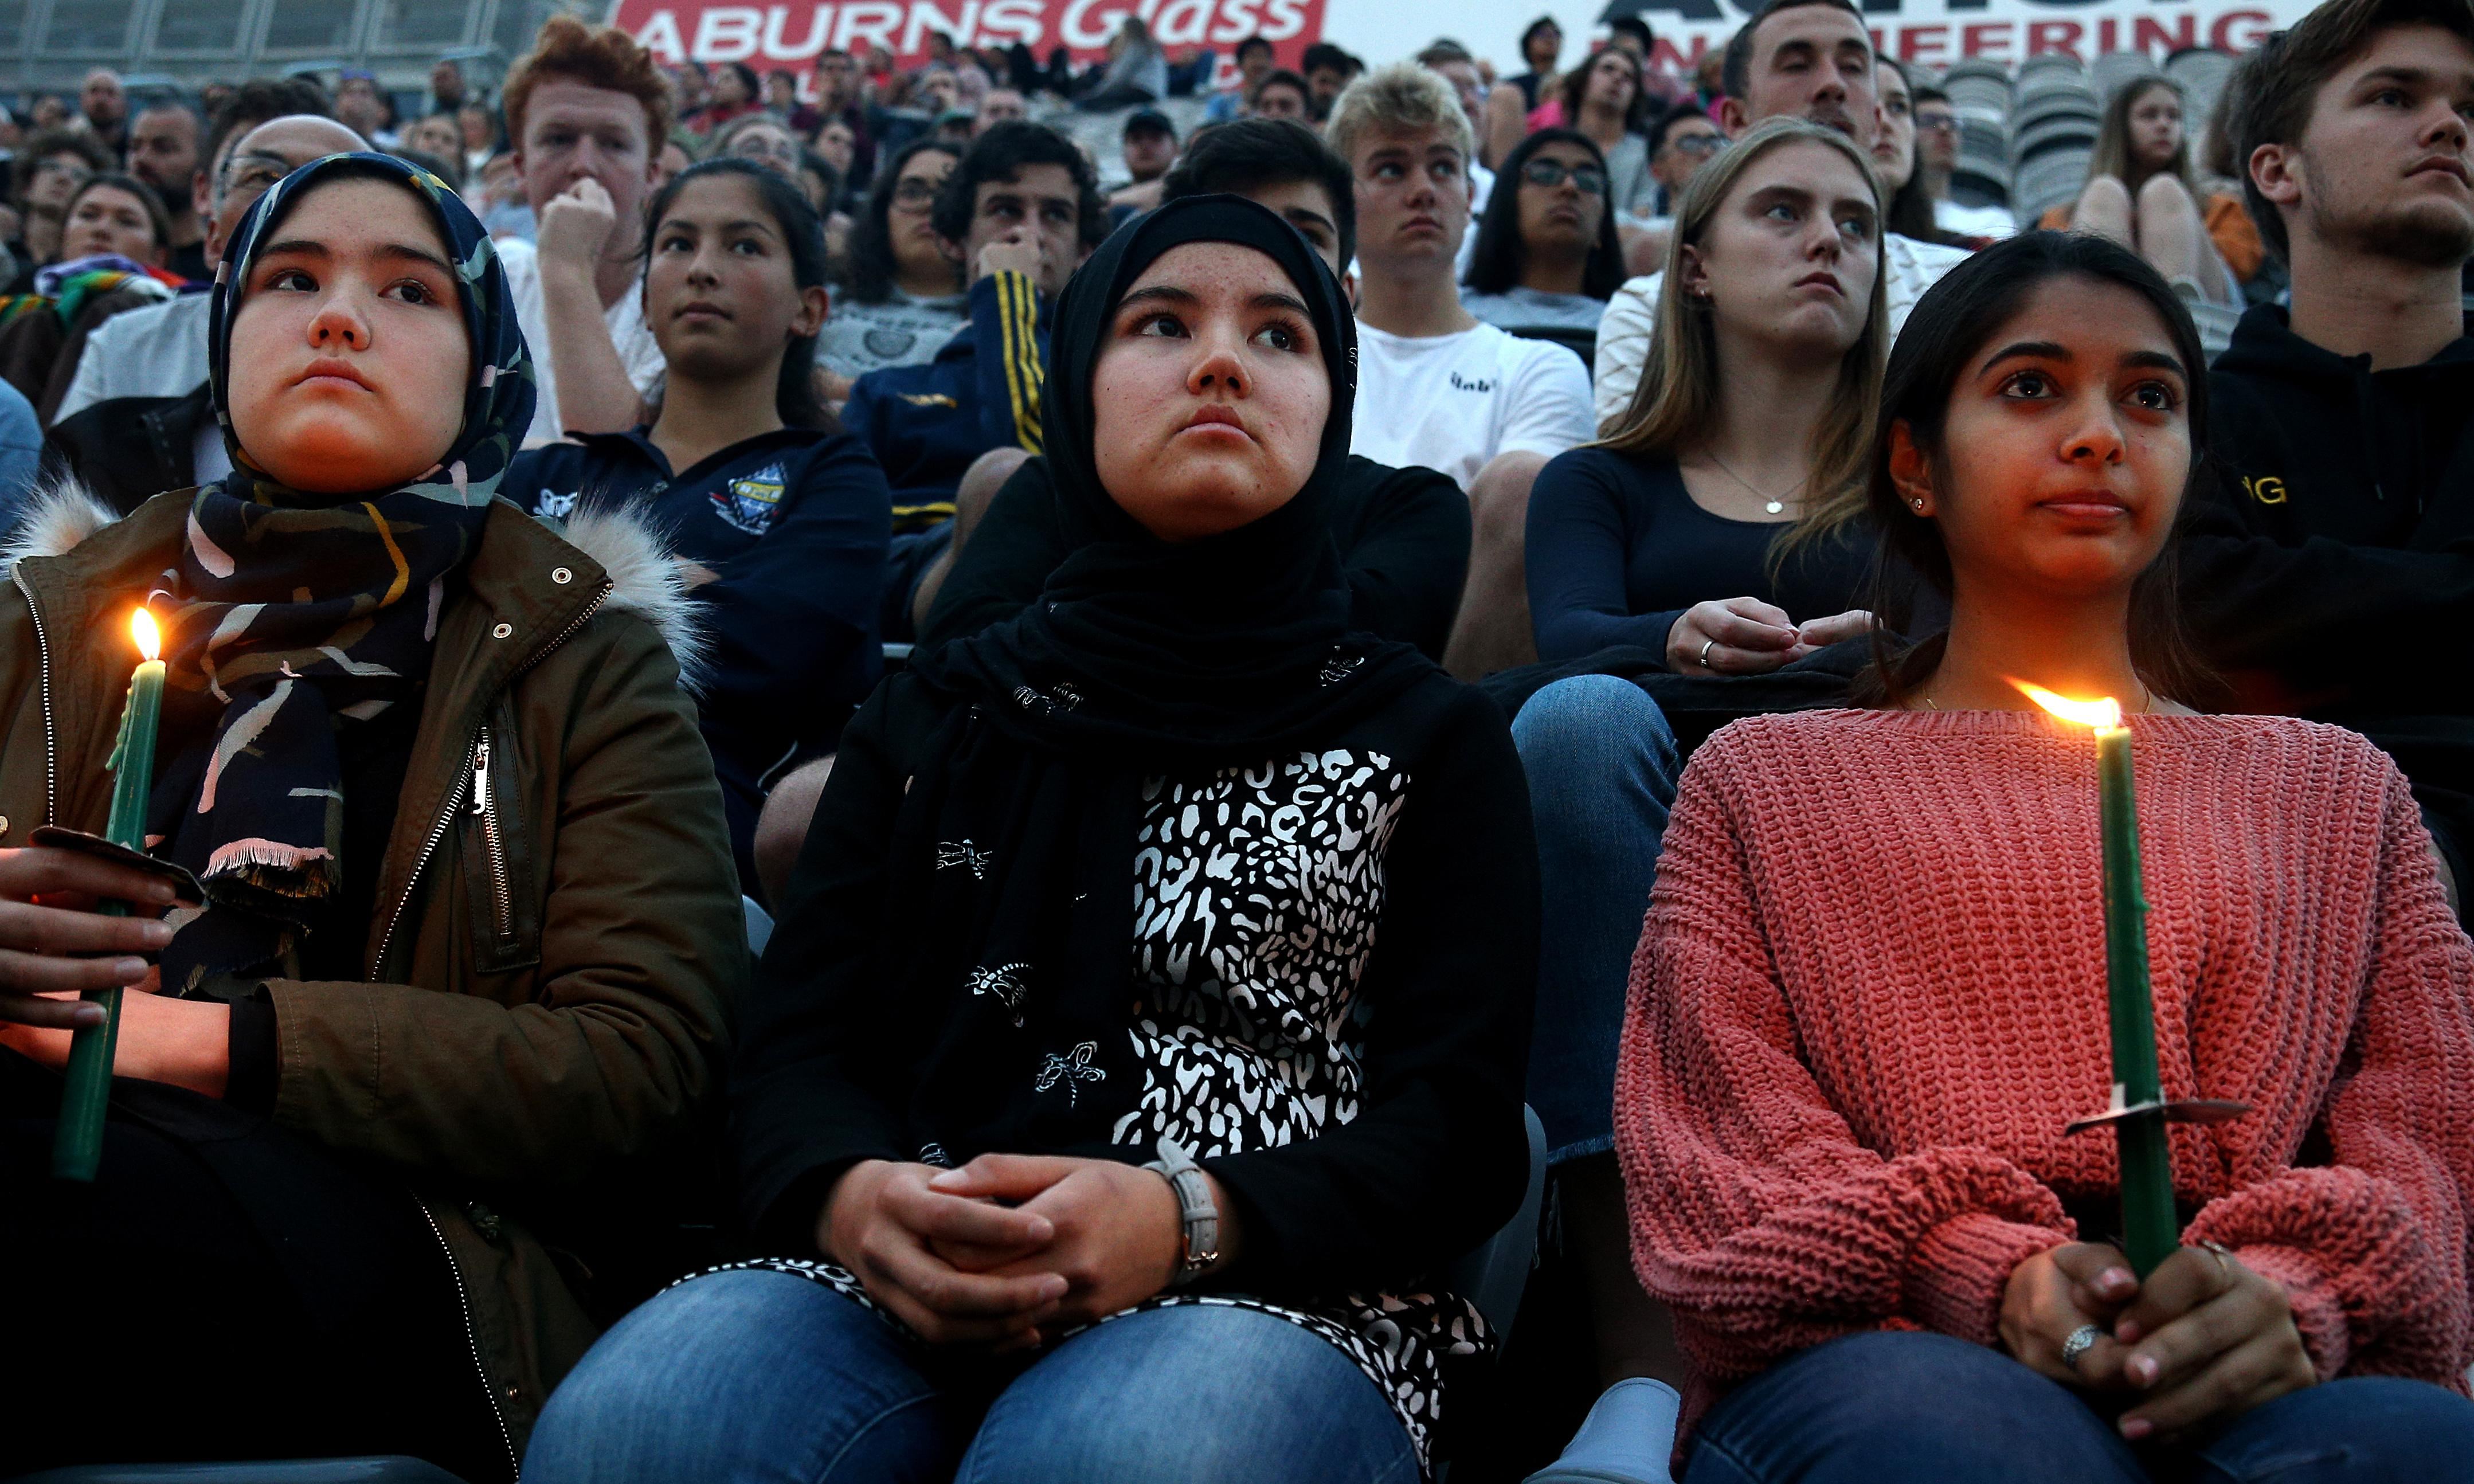 Thousands attend vigil in Dunedin for victims of Christchurch attack